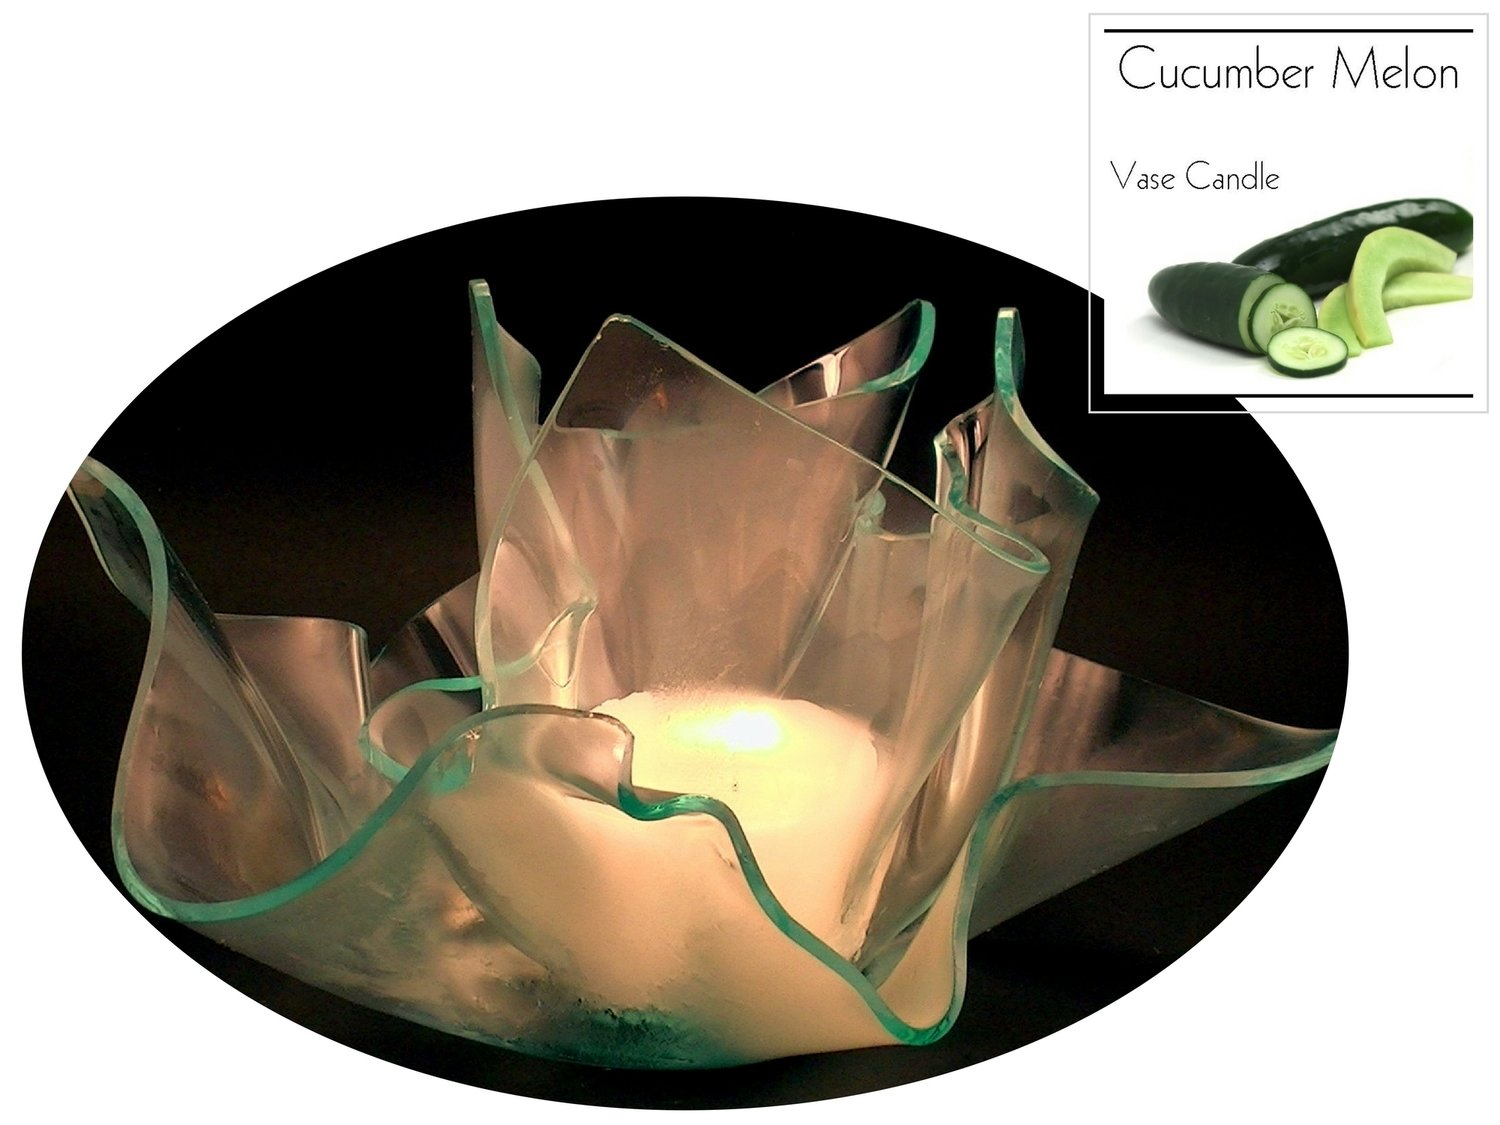 2 Cucumber Melon Candle Refills | Clear Satin Vase & Dish Set